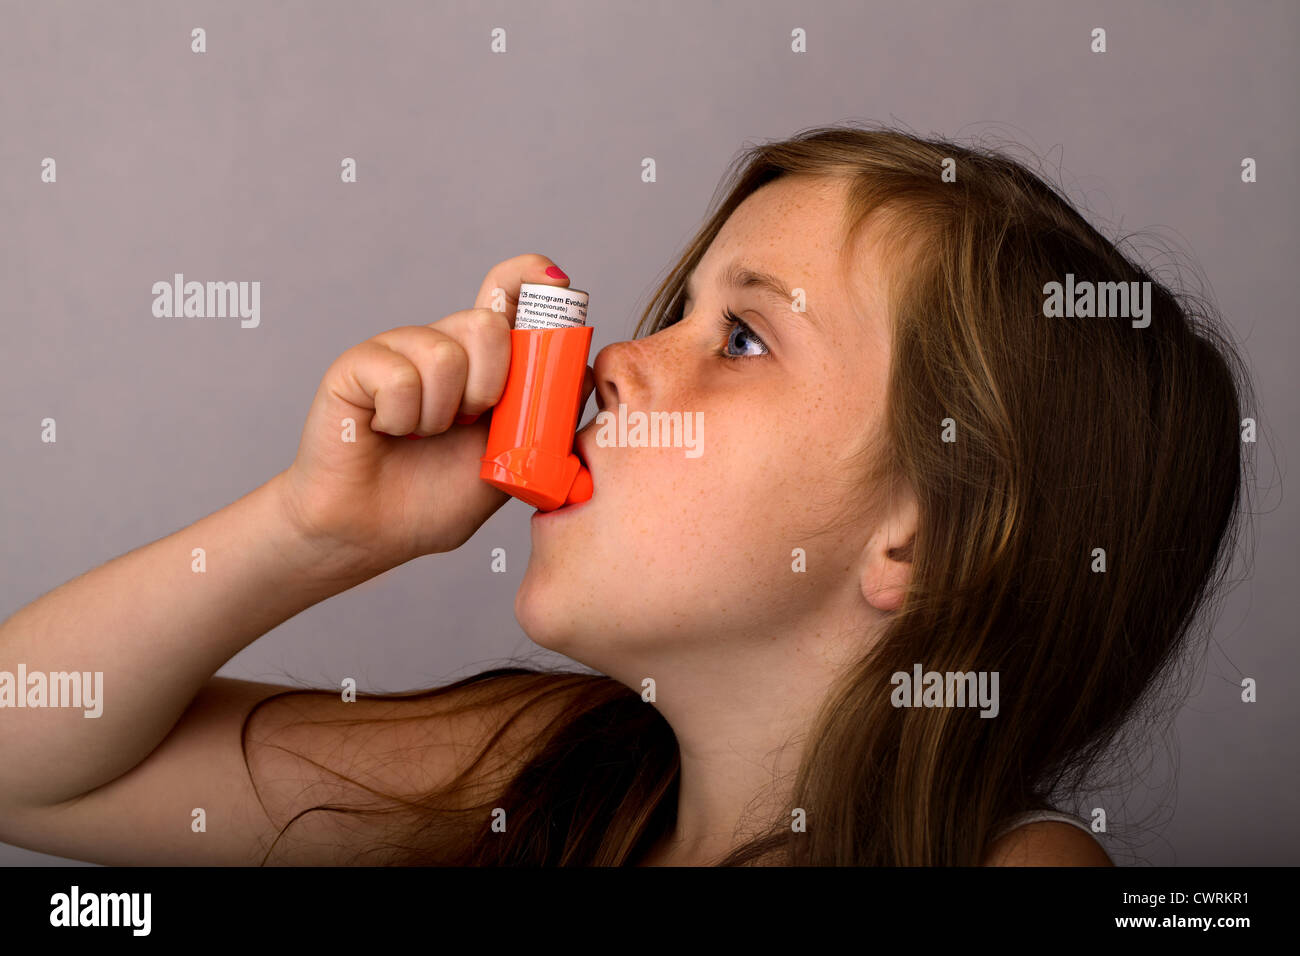 A 10 year old girl using an asthma pump - Stock Image